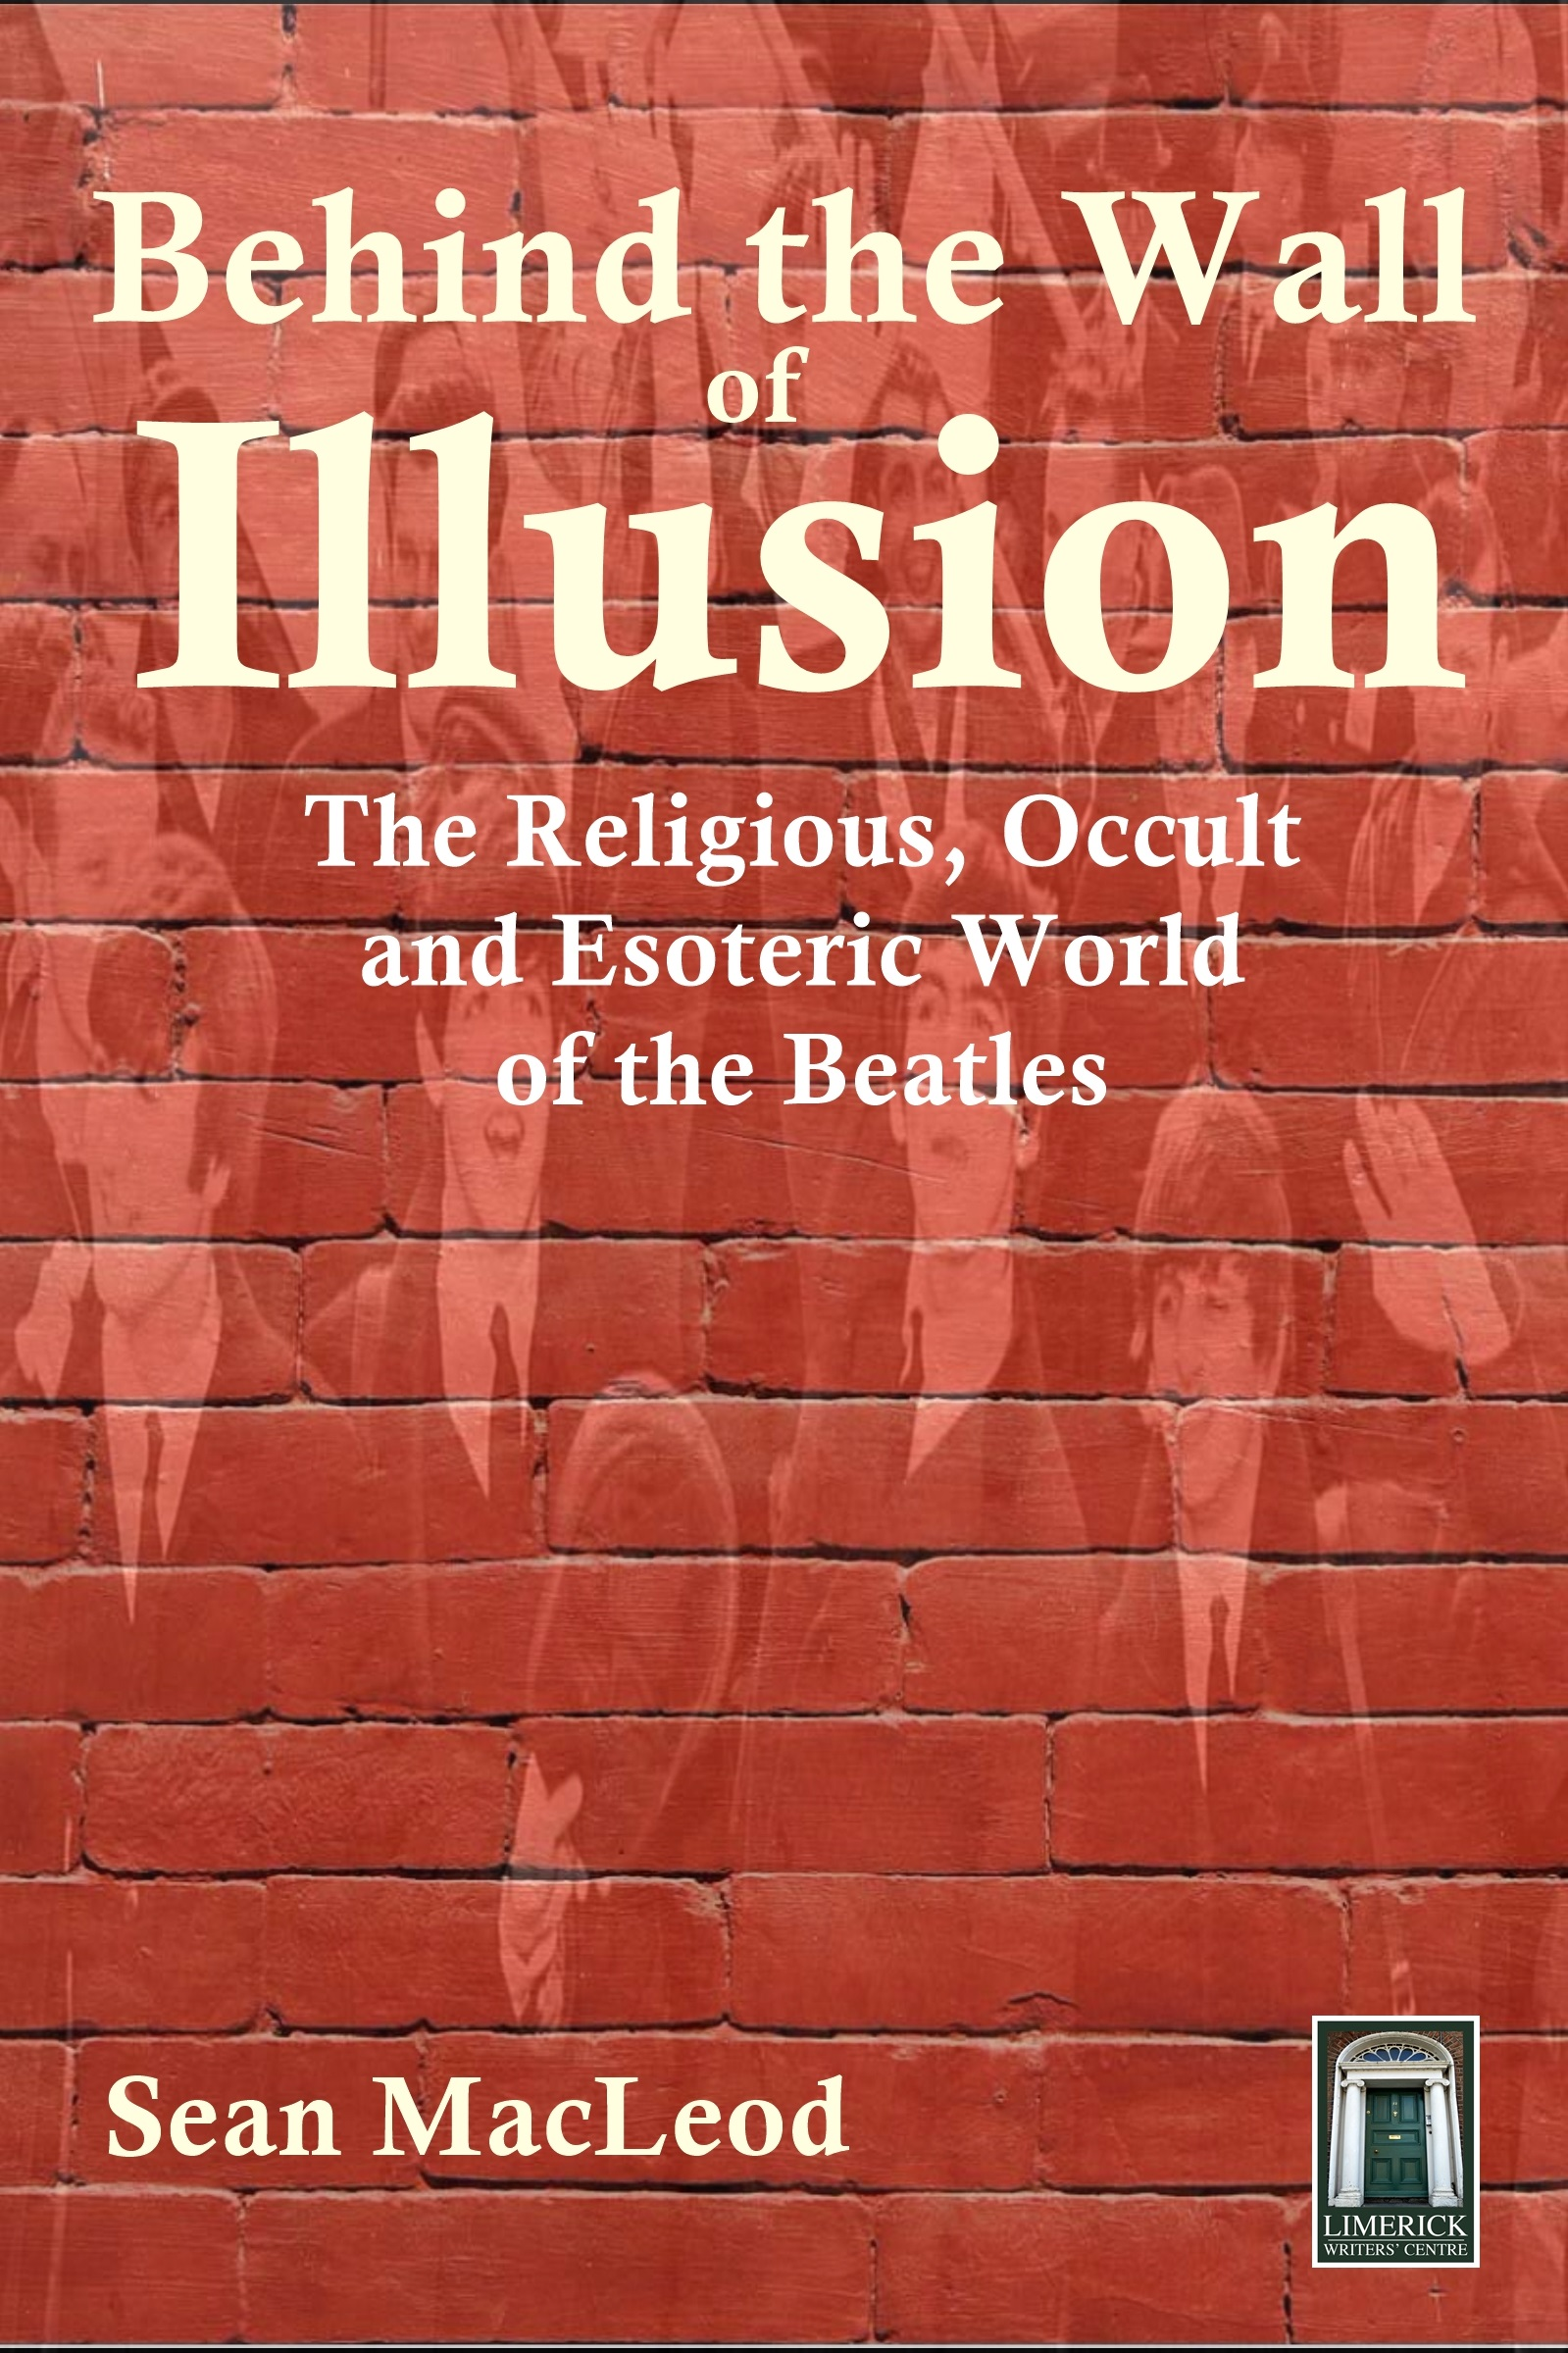 Behind The Wall of Illusion: The Religious, Occult and Esoteric World of  the Beatles, an Ebook by Sean MacLeod